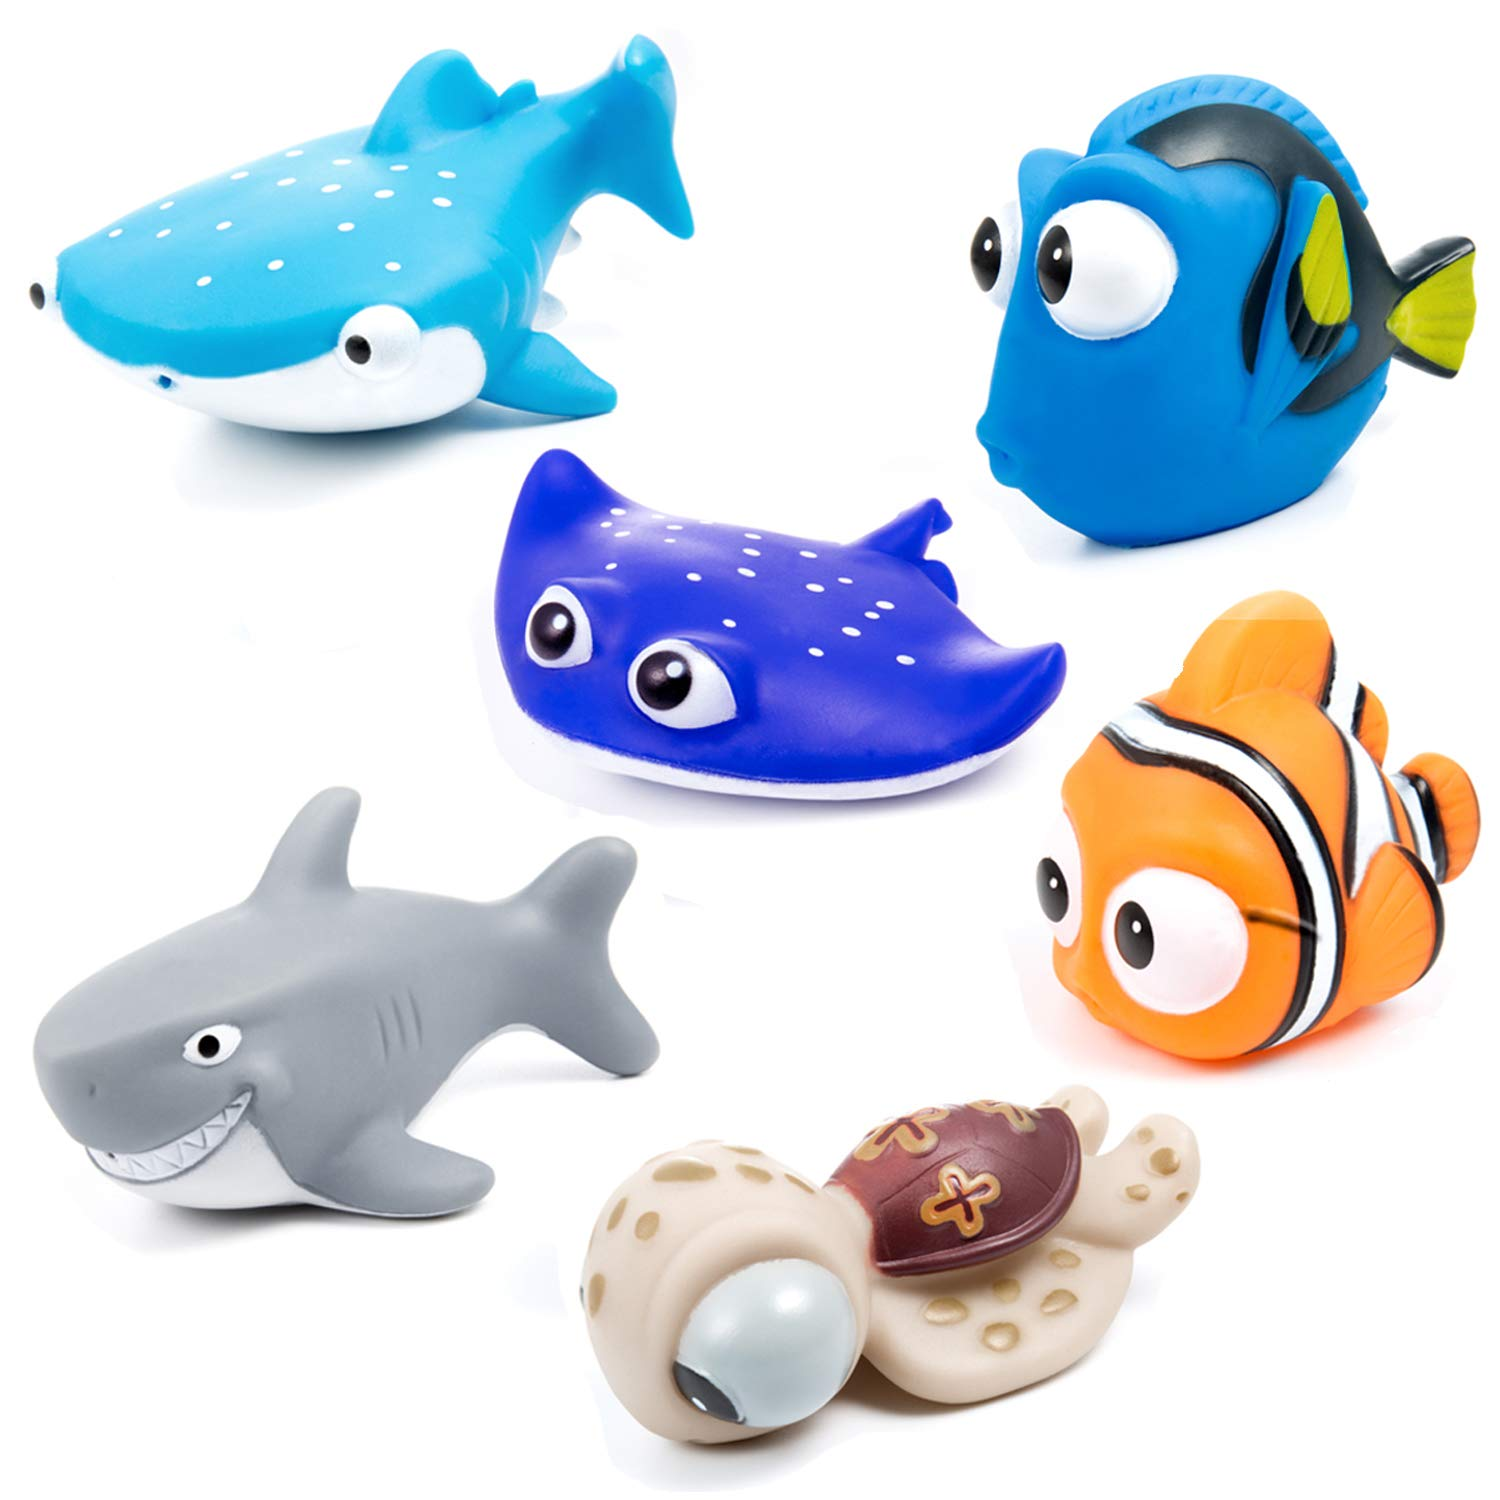 MOOKLIN 6pcs Floating Bath Toys Sea Animals Bathtub Water Toys Squirt Toys Bathroom Accessory Set for Baby Kids Toddler Shower and Swimming Tub